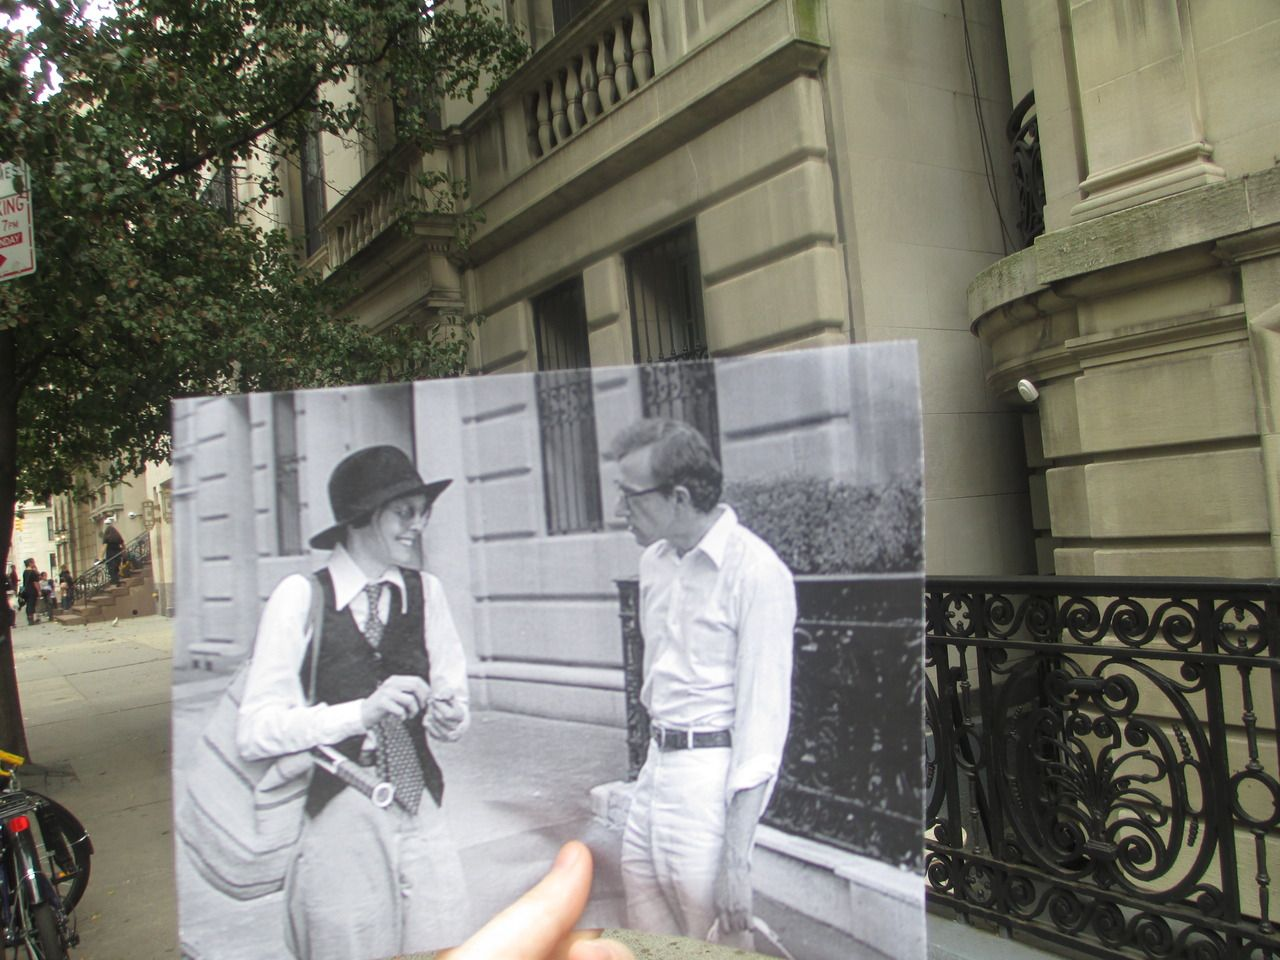 Movie Stills and their Real-Life Locations